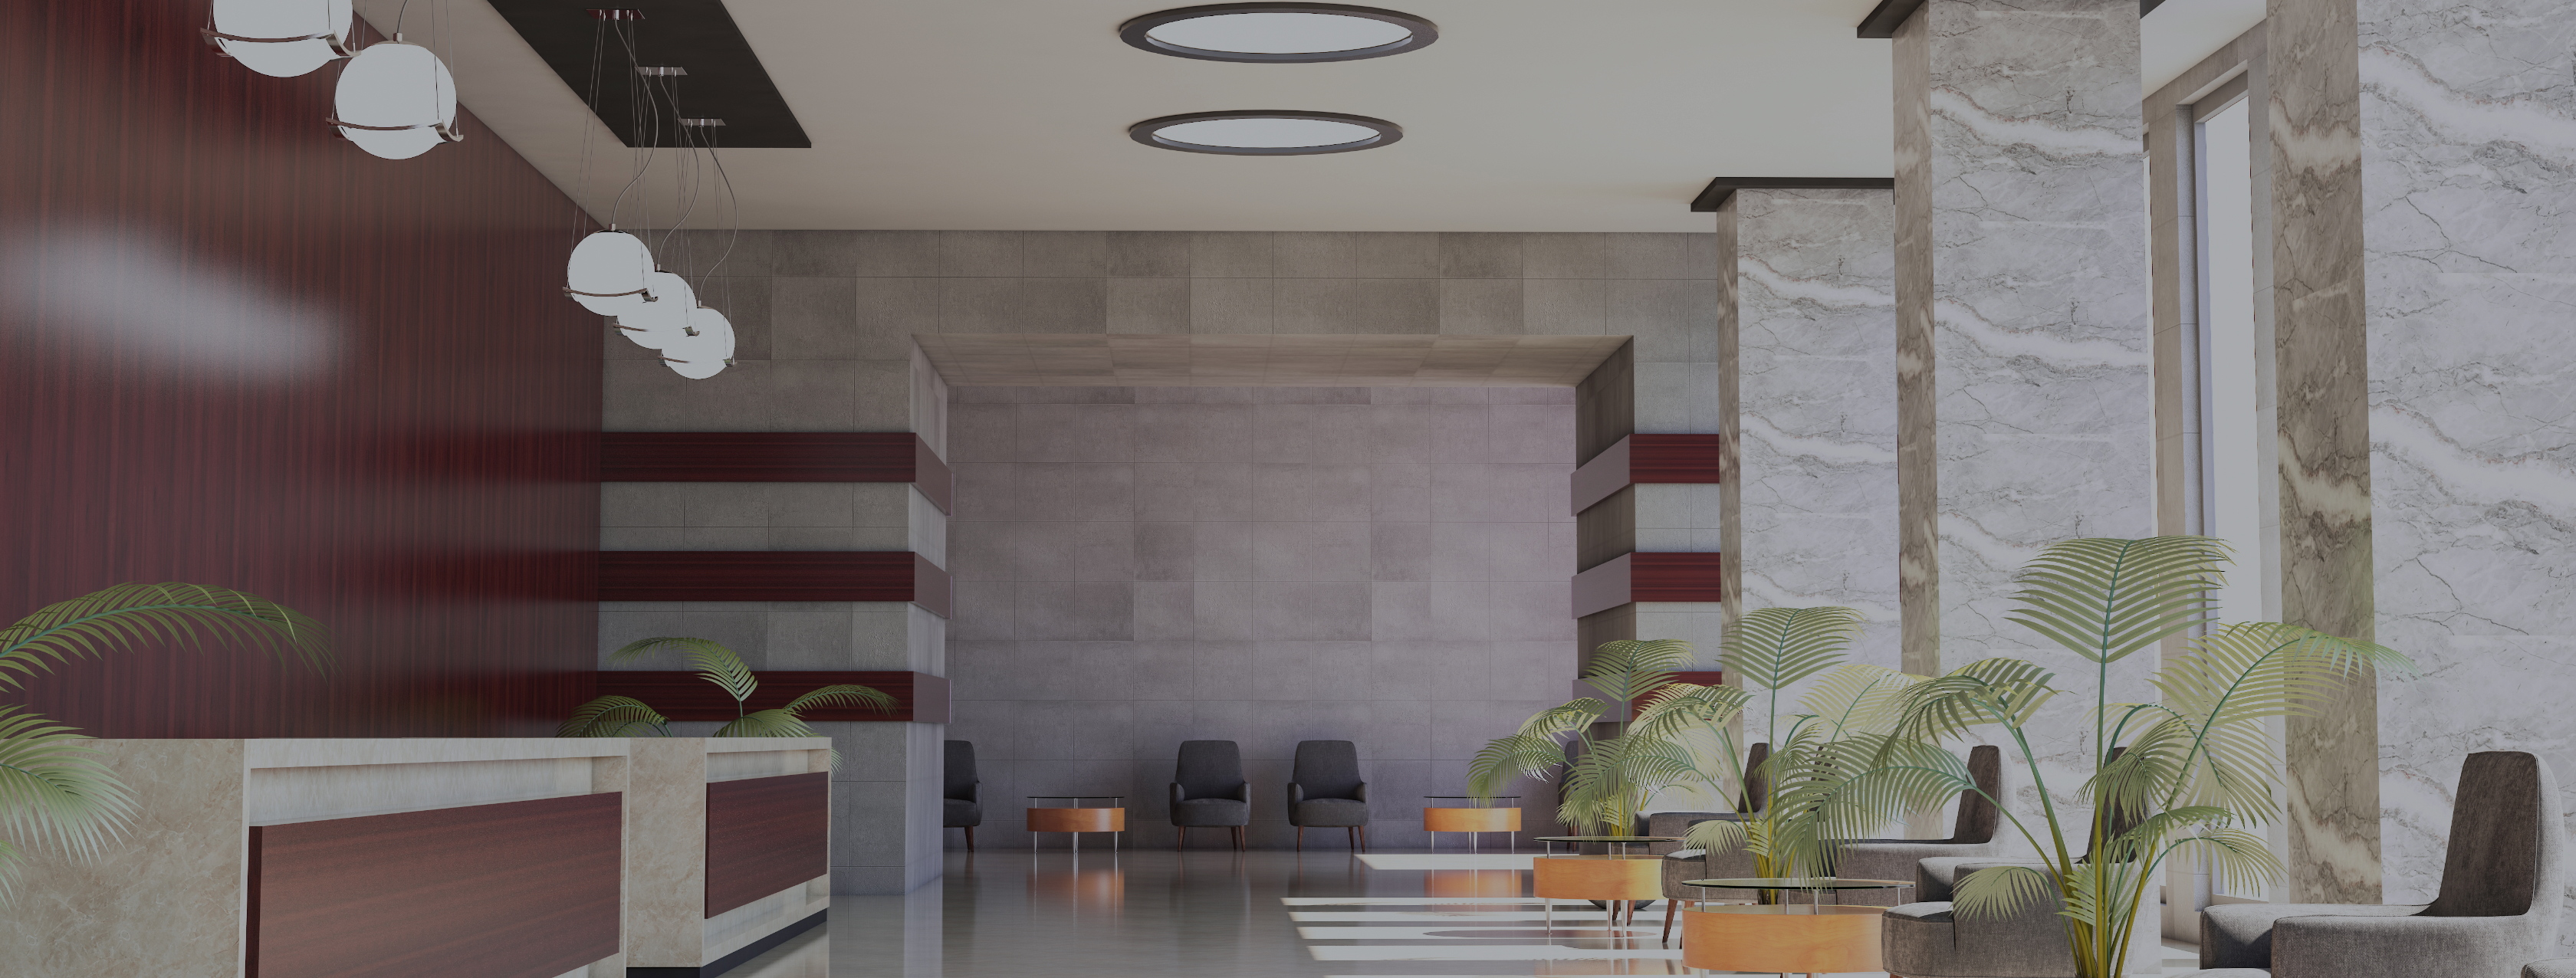 View of lobby with plants and marble walls